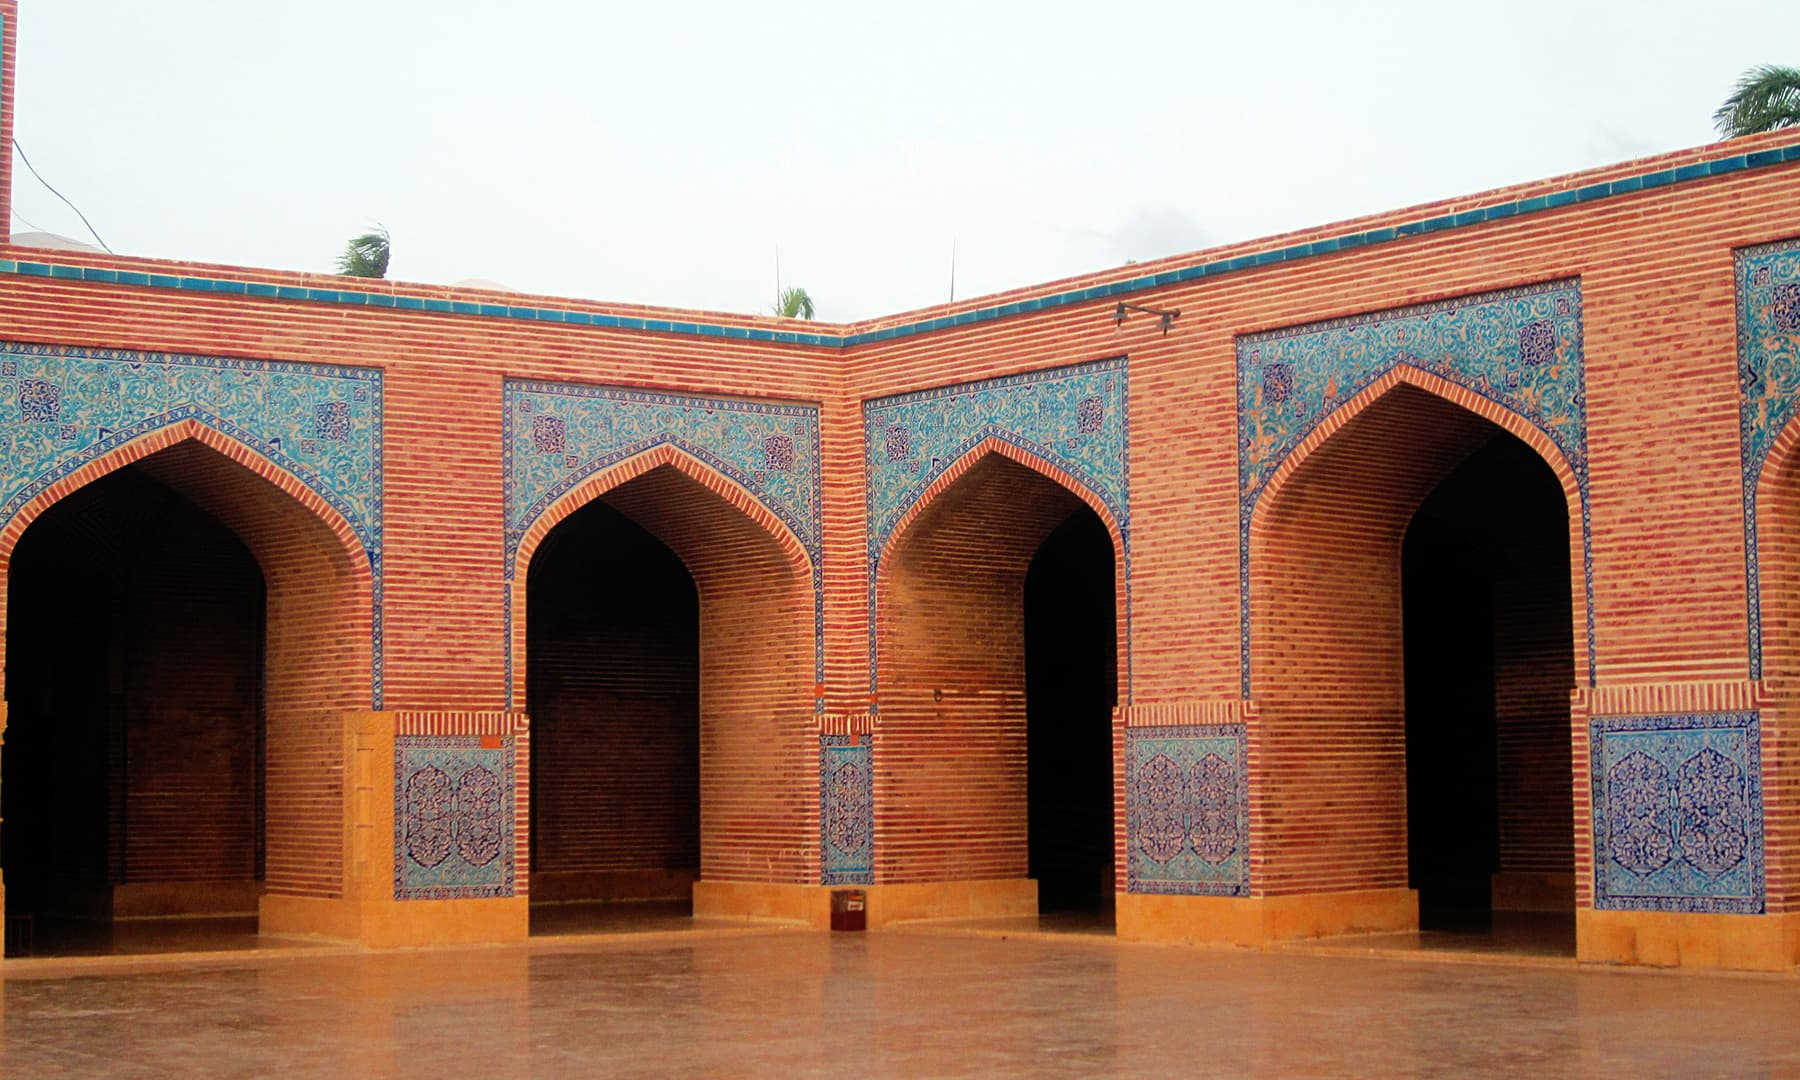 Archways in the courtyard.